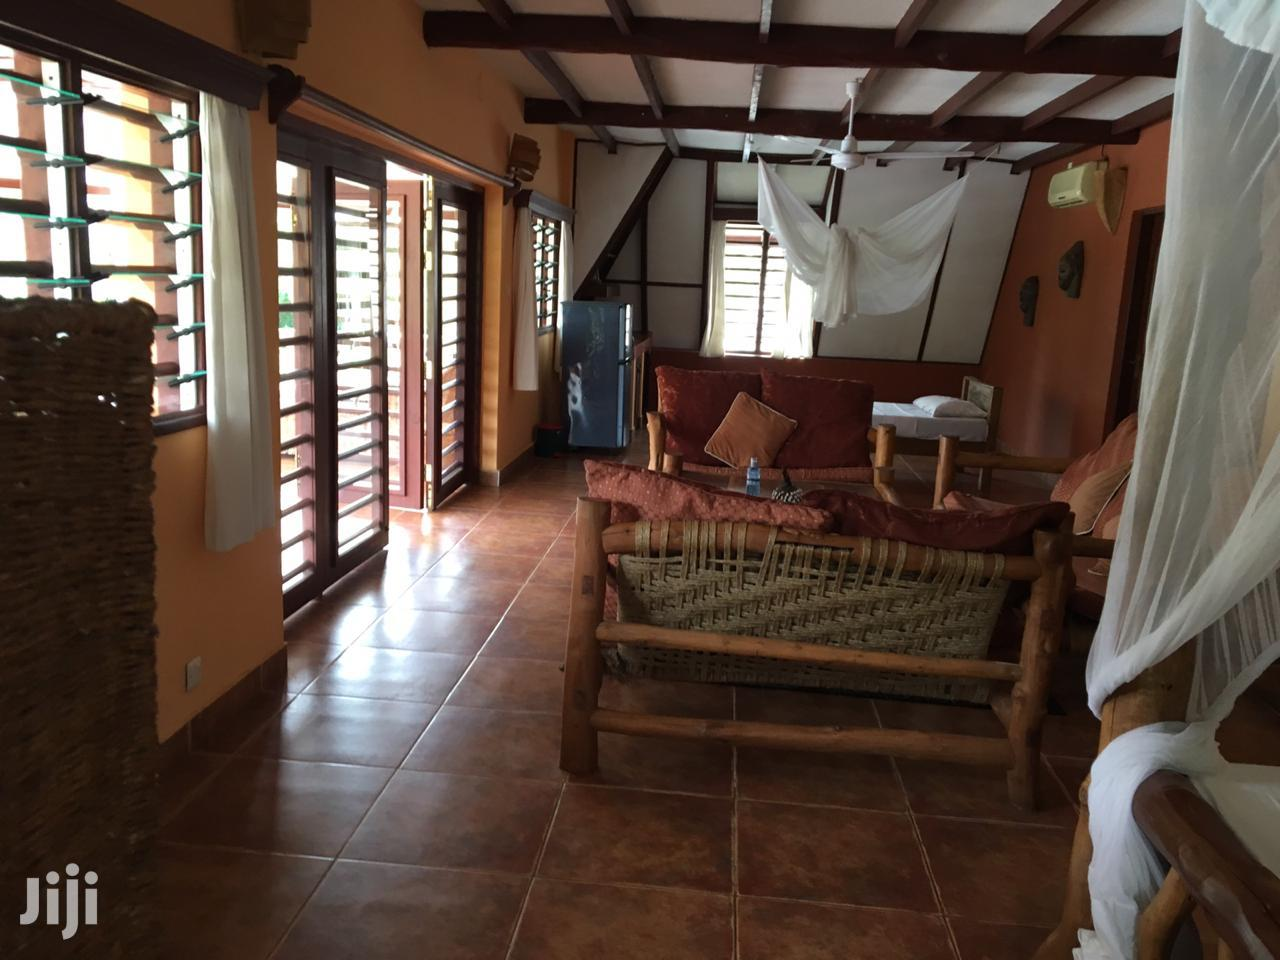 A Modern Stylish Villa For Sale | Houses & Apartments For Sale for sale in Ukunda, Kwale, Kenya